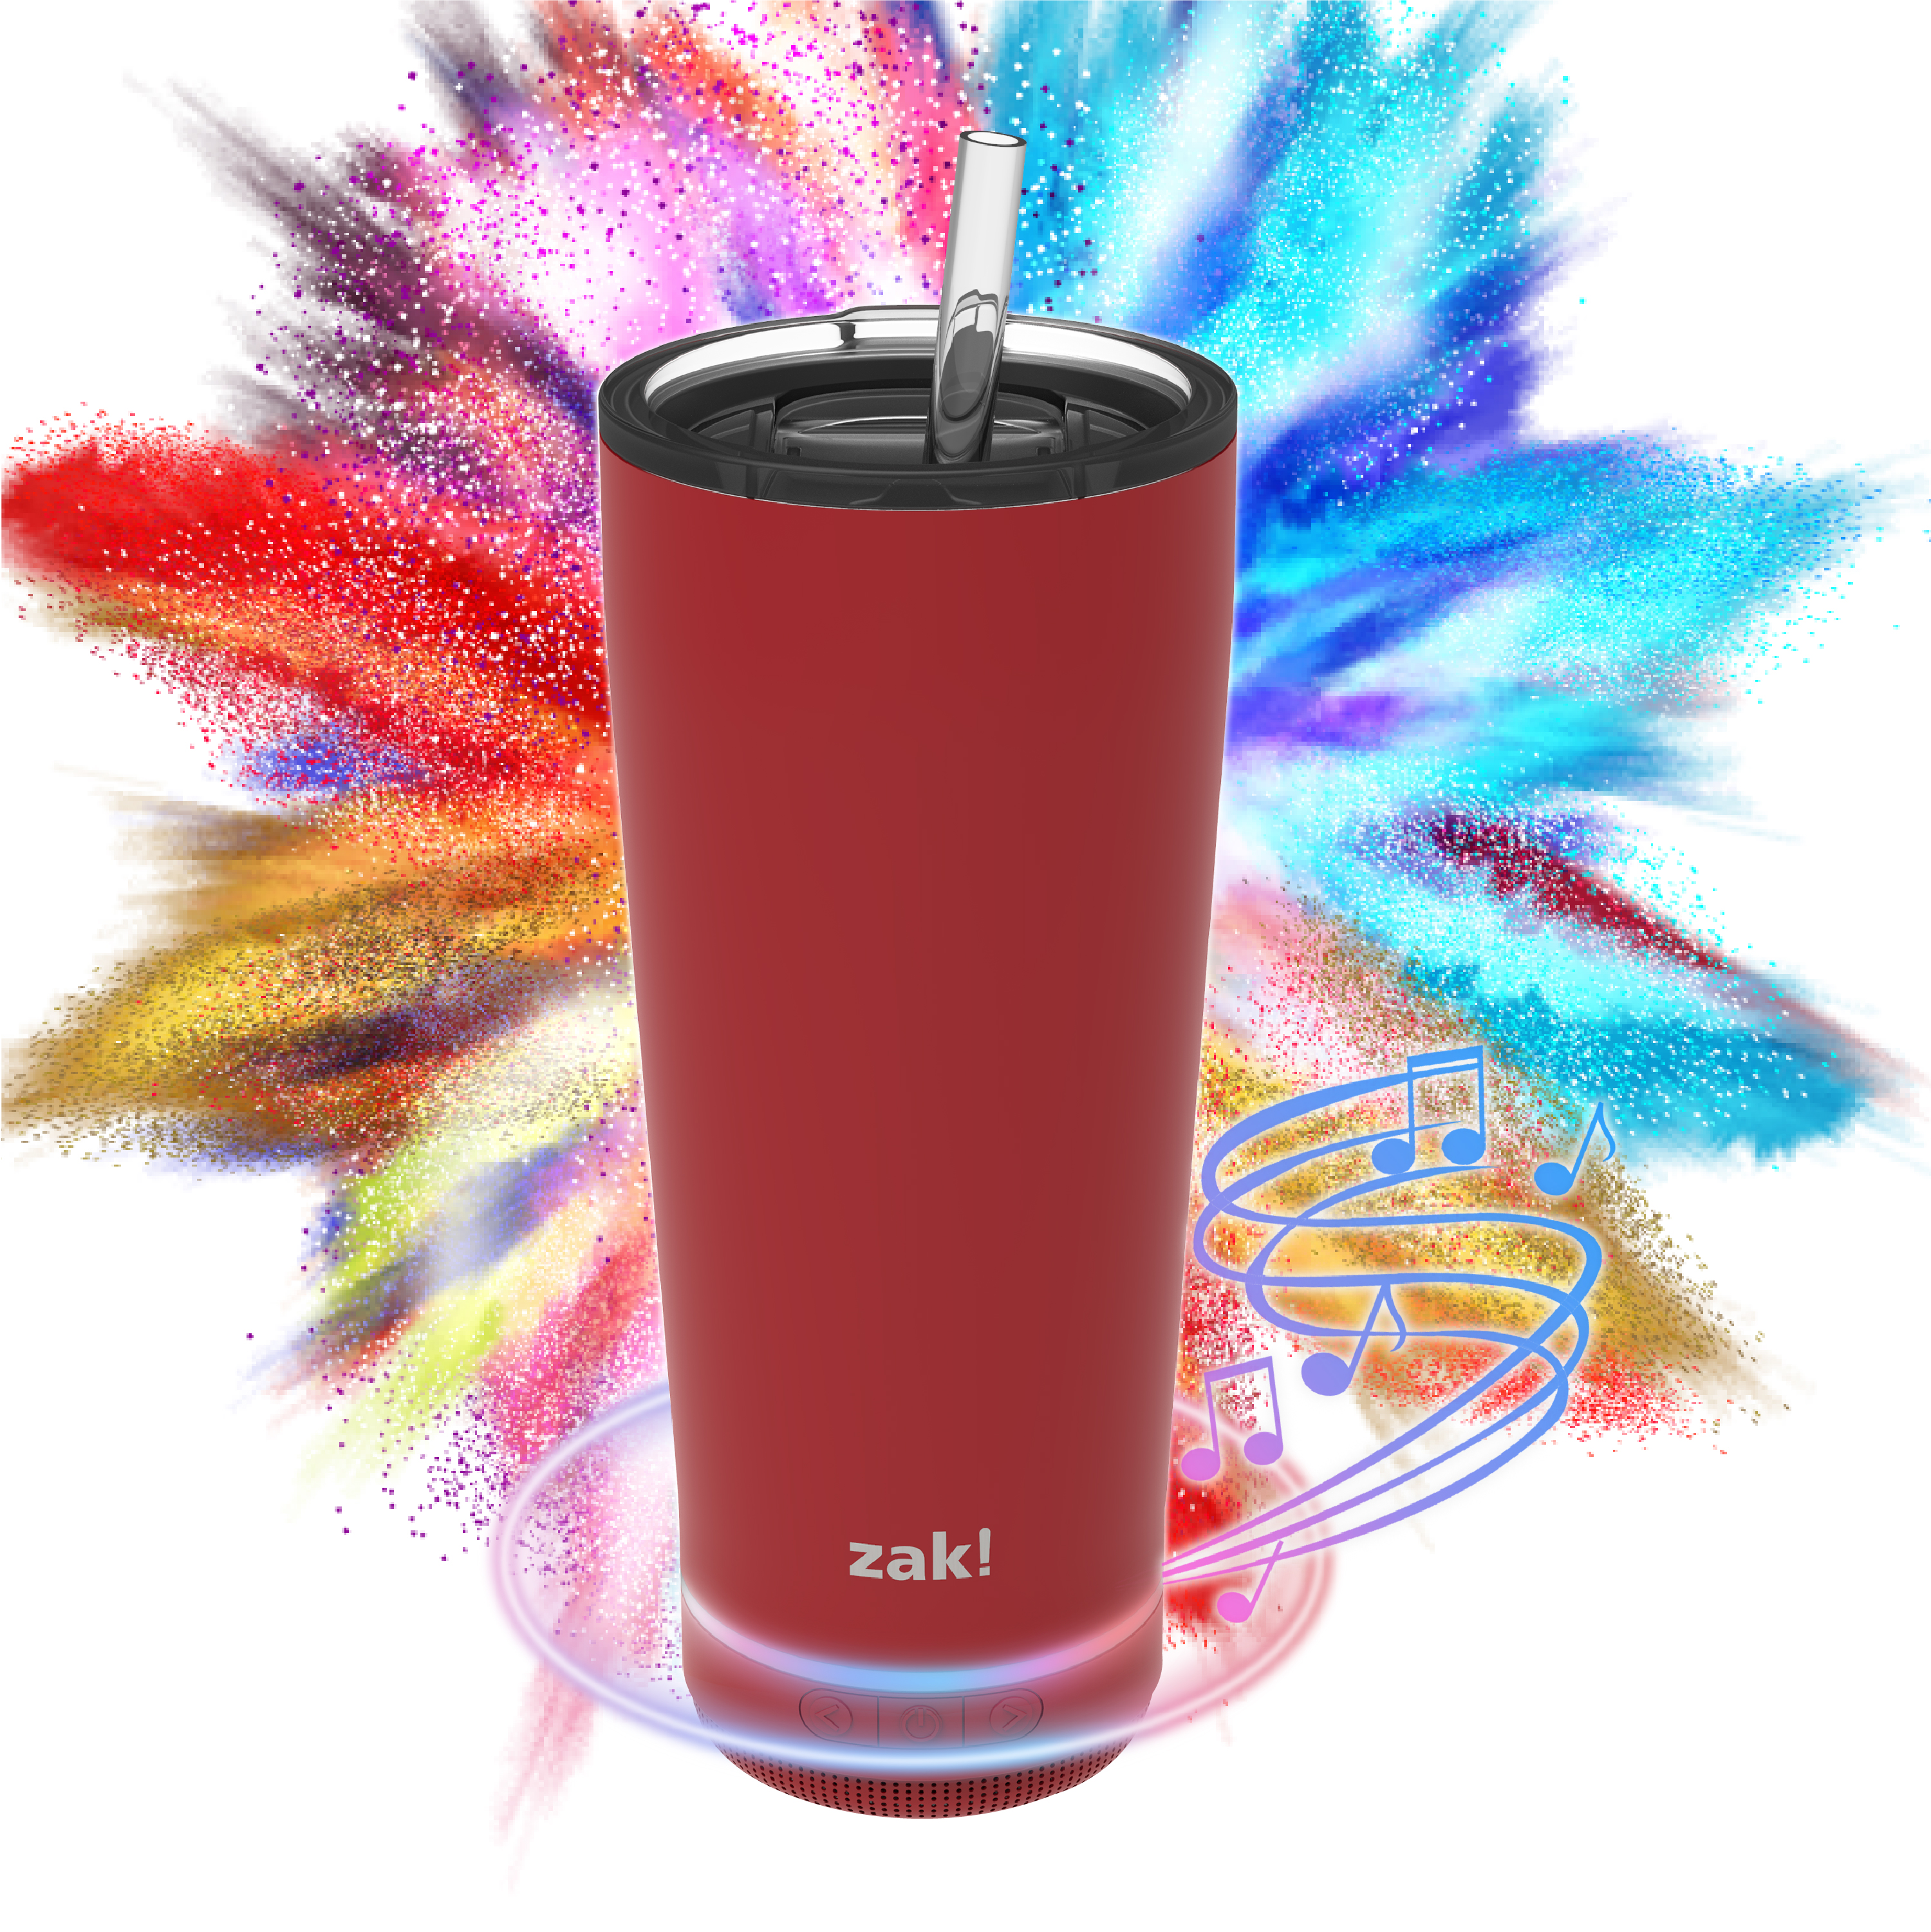 Zak Play 18 ounce Stainless Steel Tumbler with Bluetooth Speaker, Red slideshow image 14